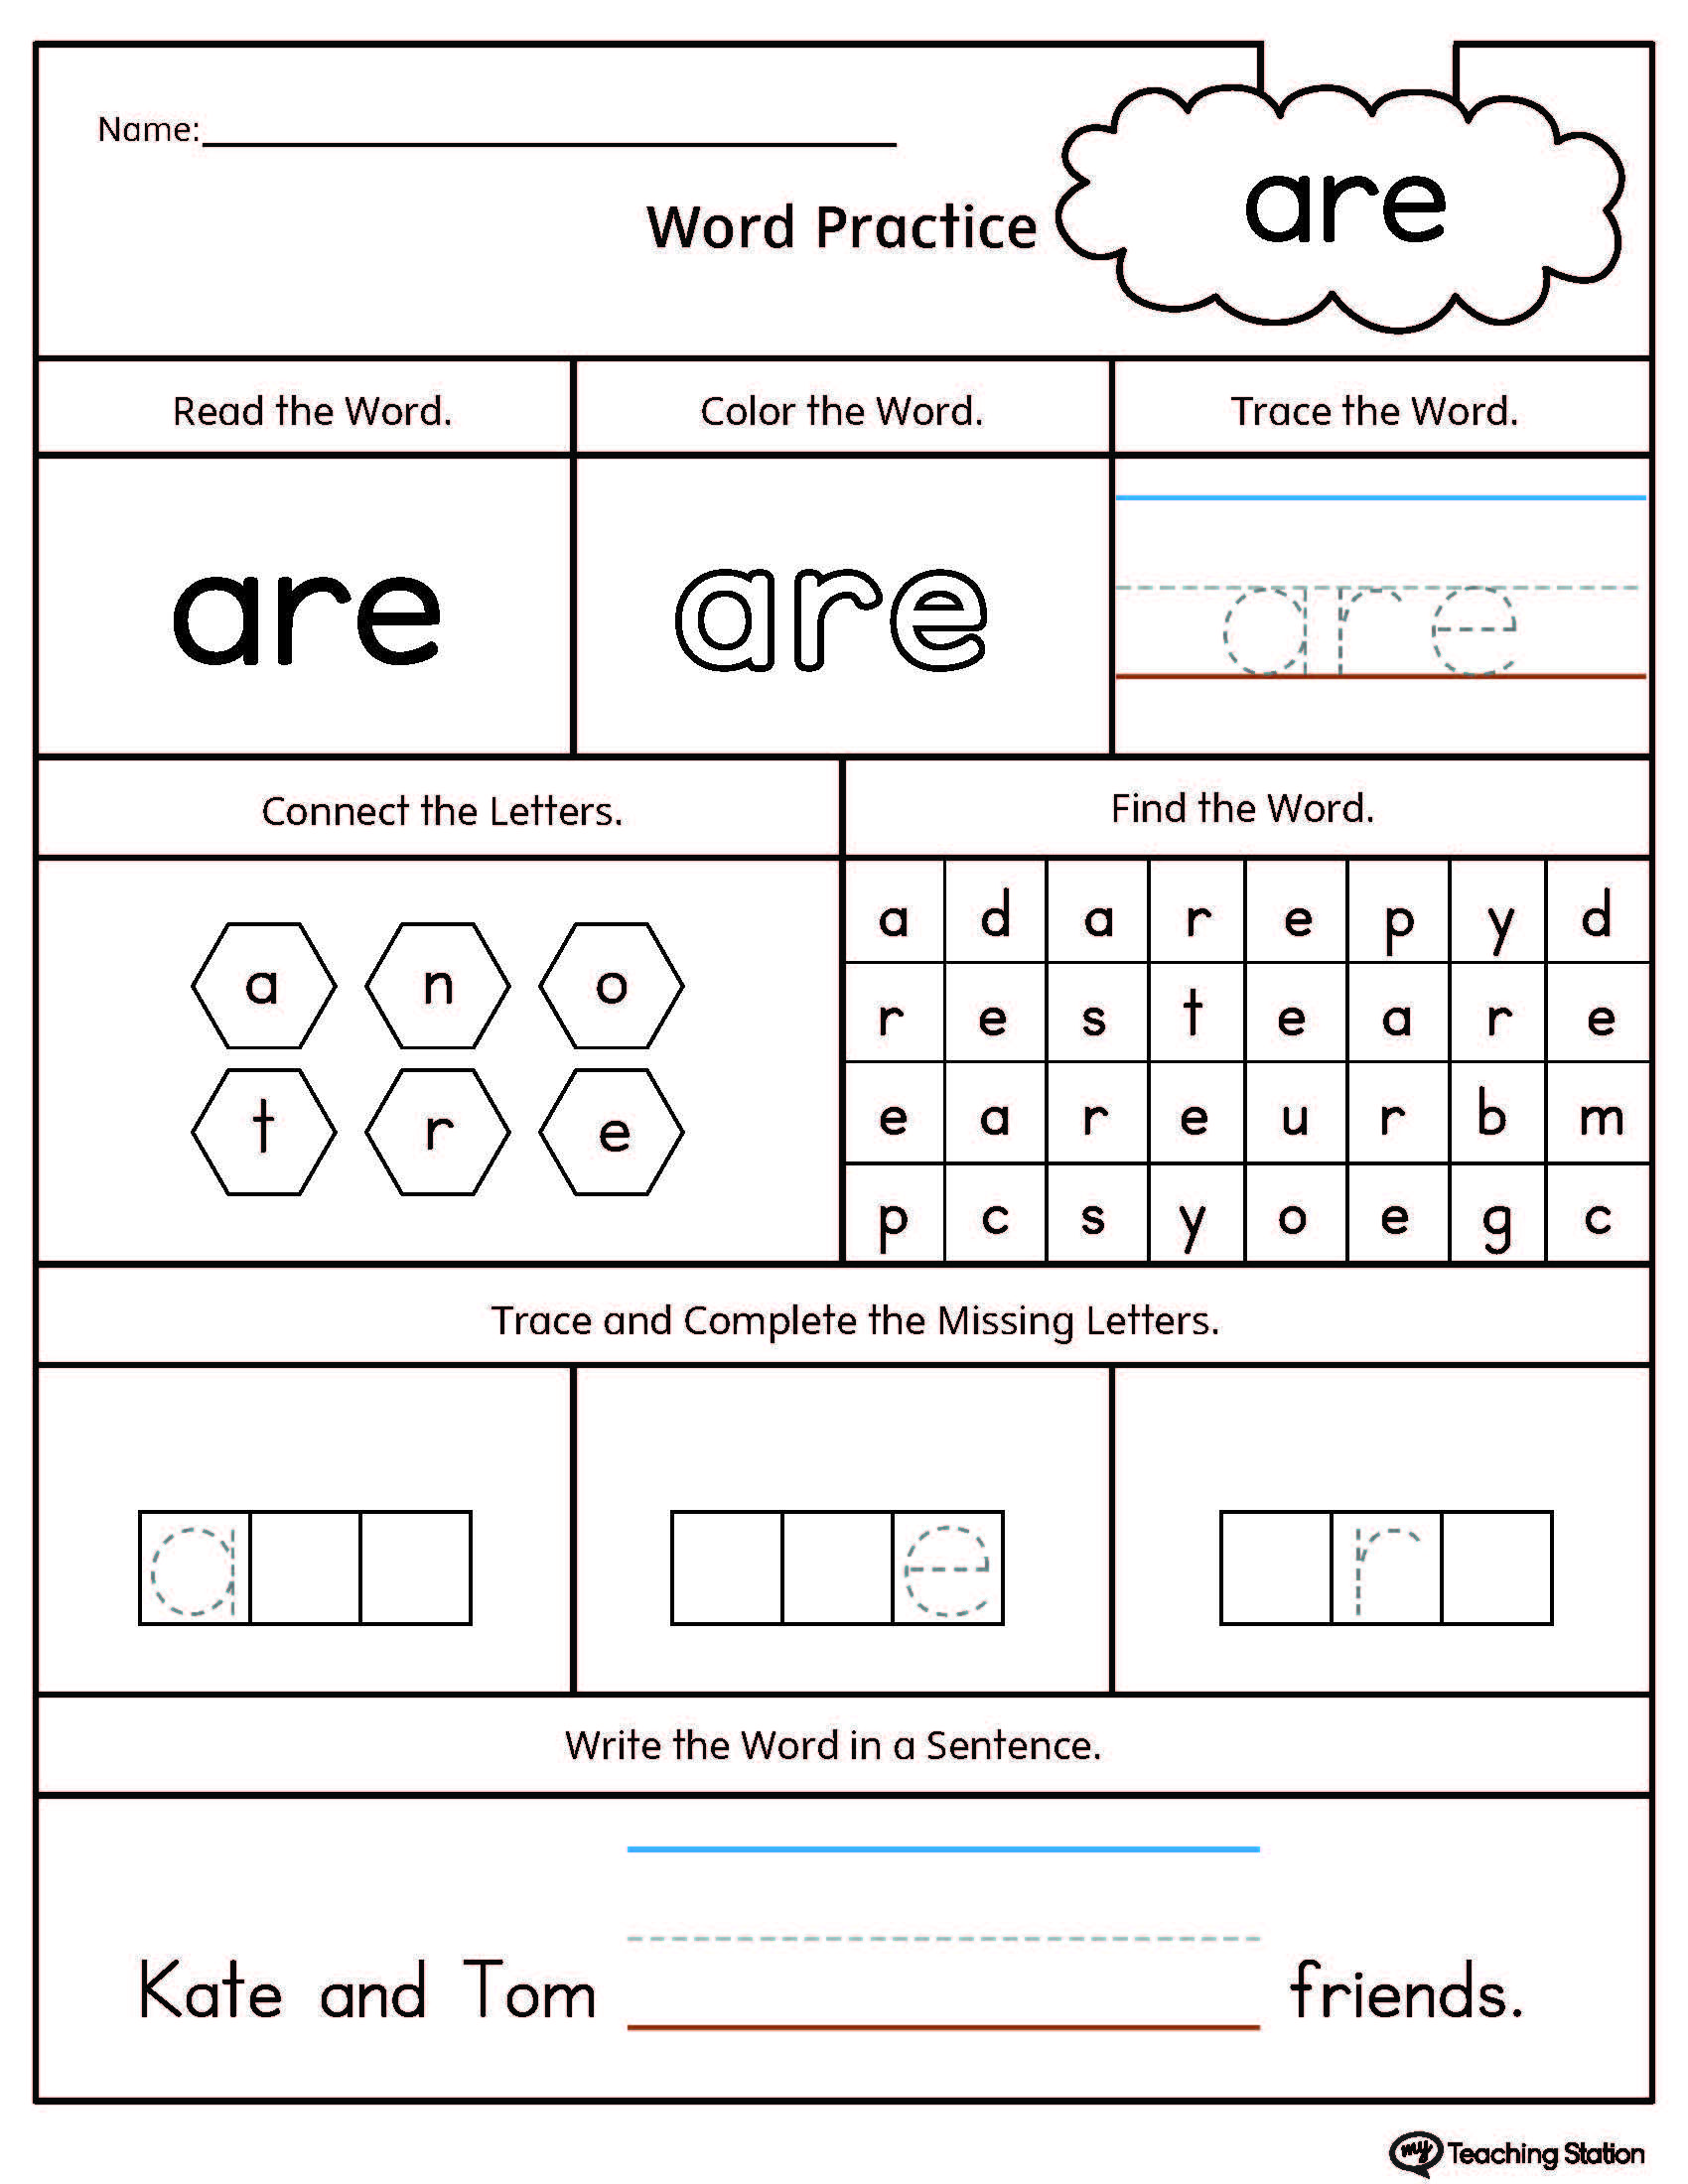 High Frequency Word Are Printable Worksheet Kindergarten Worksheets Sight Words Sight Words Kindergarten Sight Word Worksheets